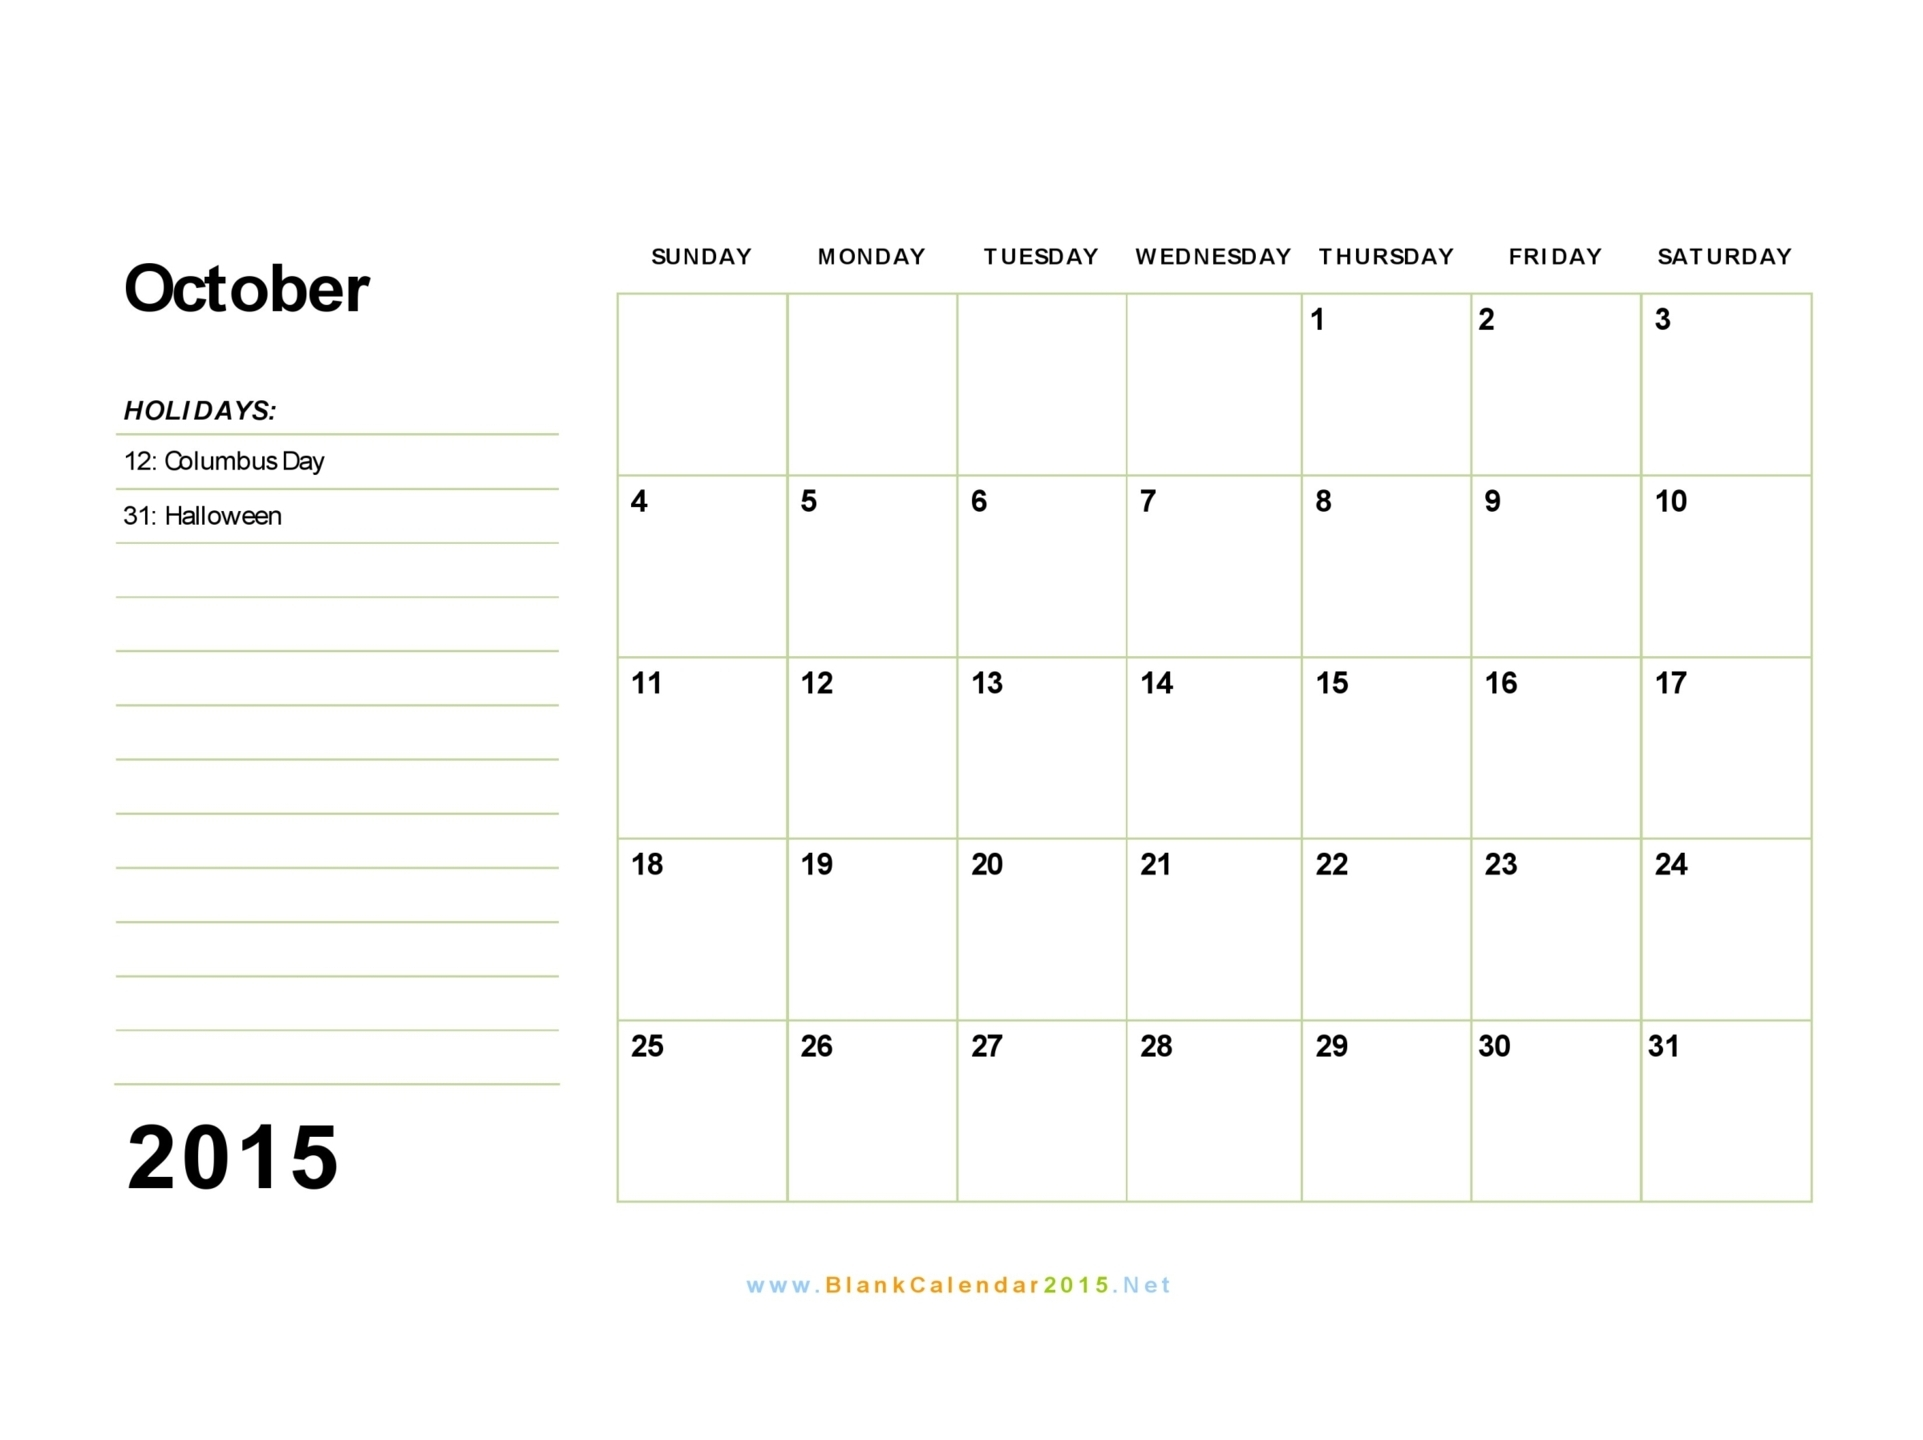 20 microsoft blank calendar template images microsoft for 2015 monthly calendar template for word